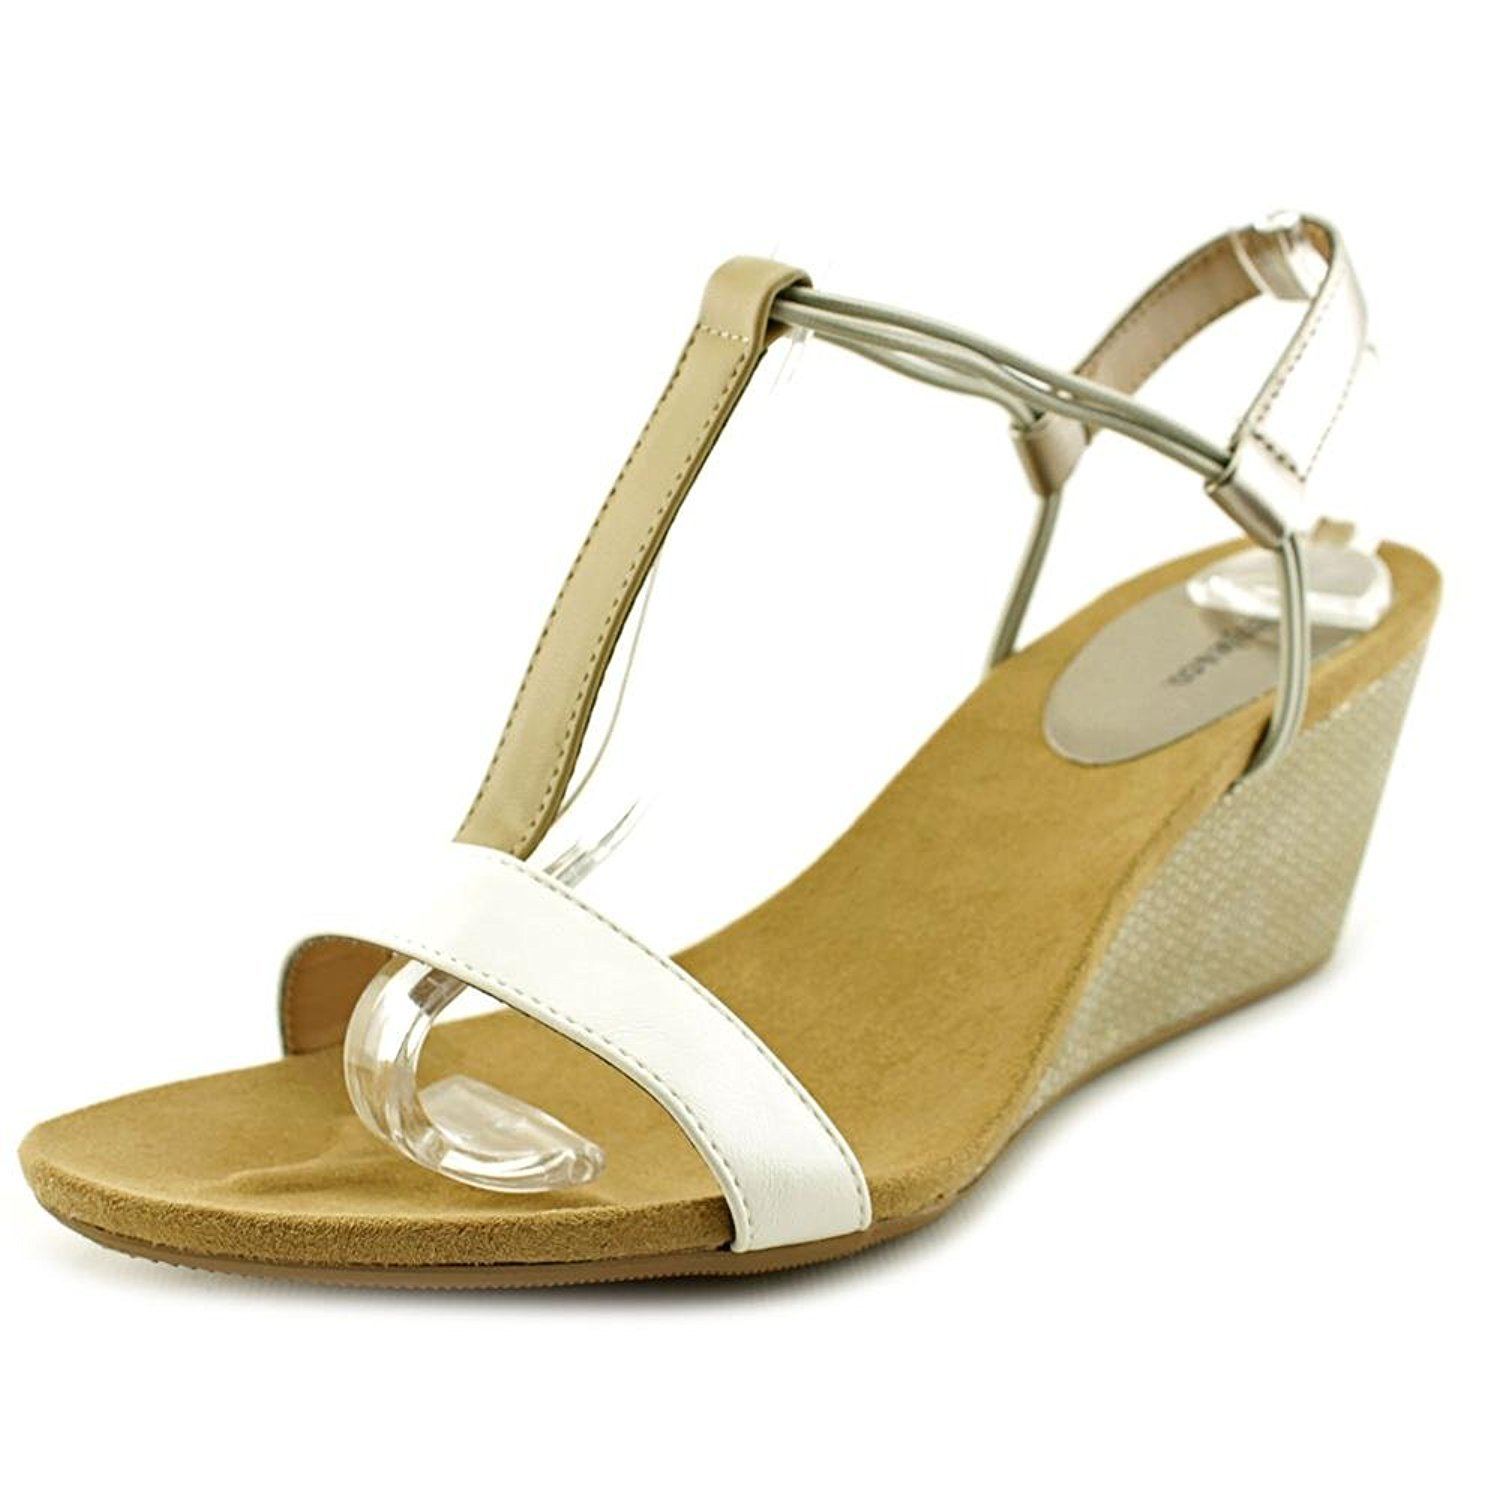 Style & Co... Womens Mulan Open Toe Casual, White/French Vanilla/Beige, Size 9.5